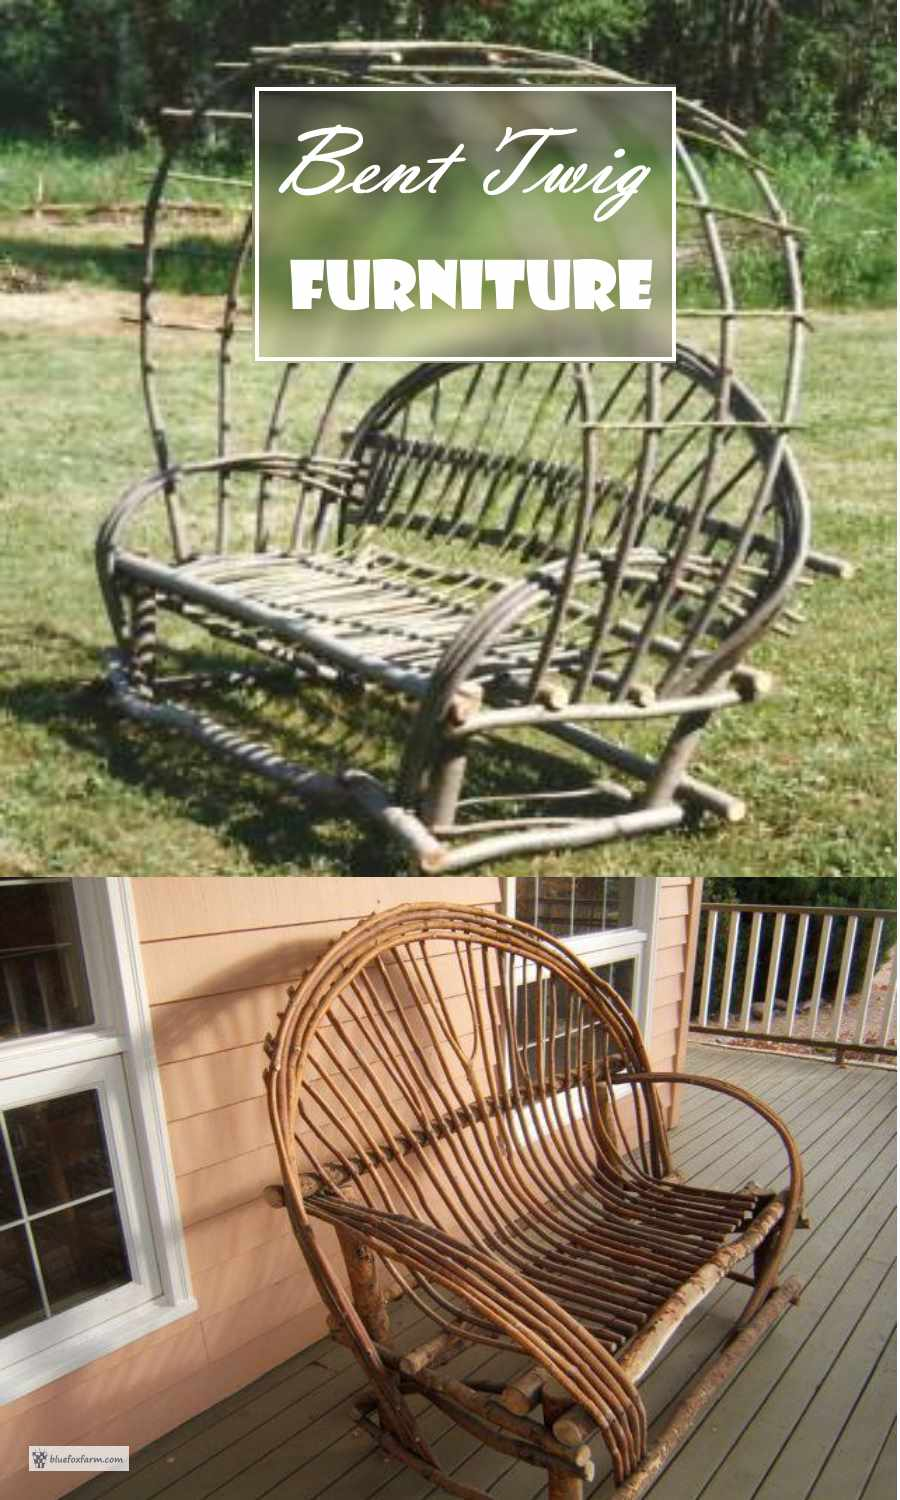 Bent Twig Furniture - classic and rustic...